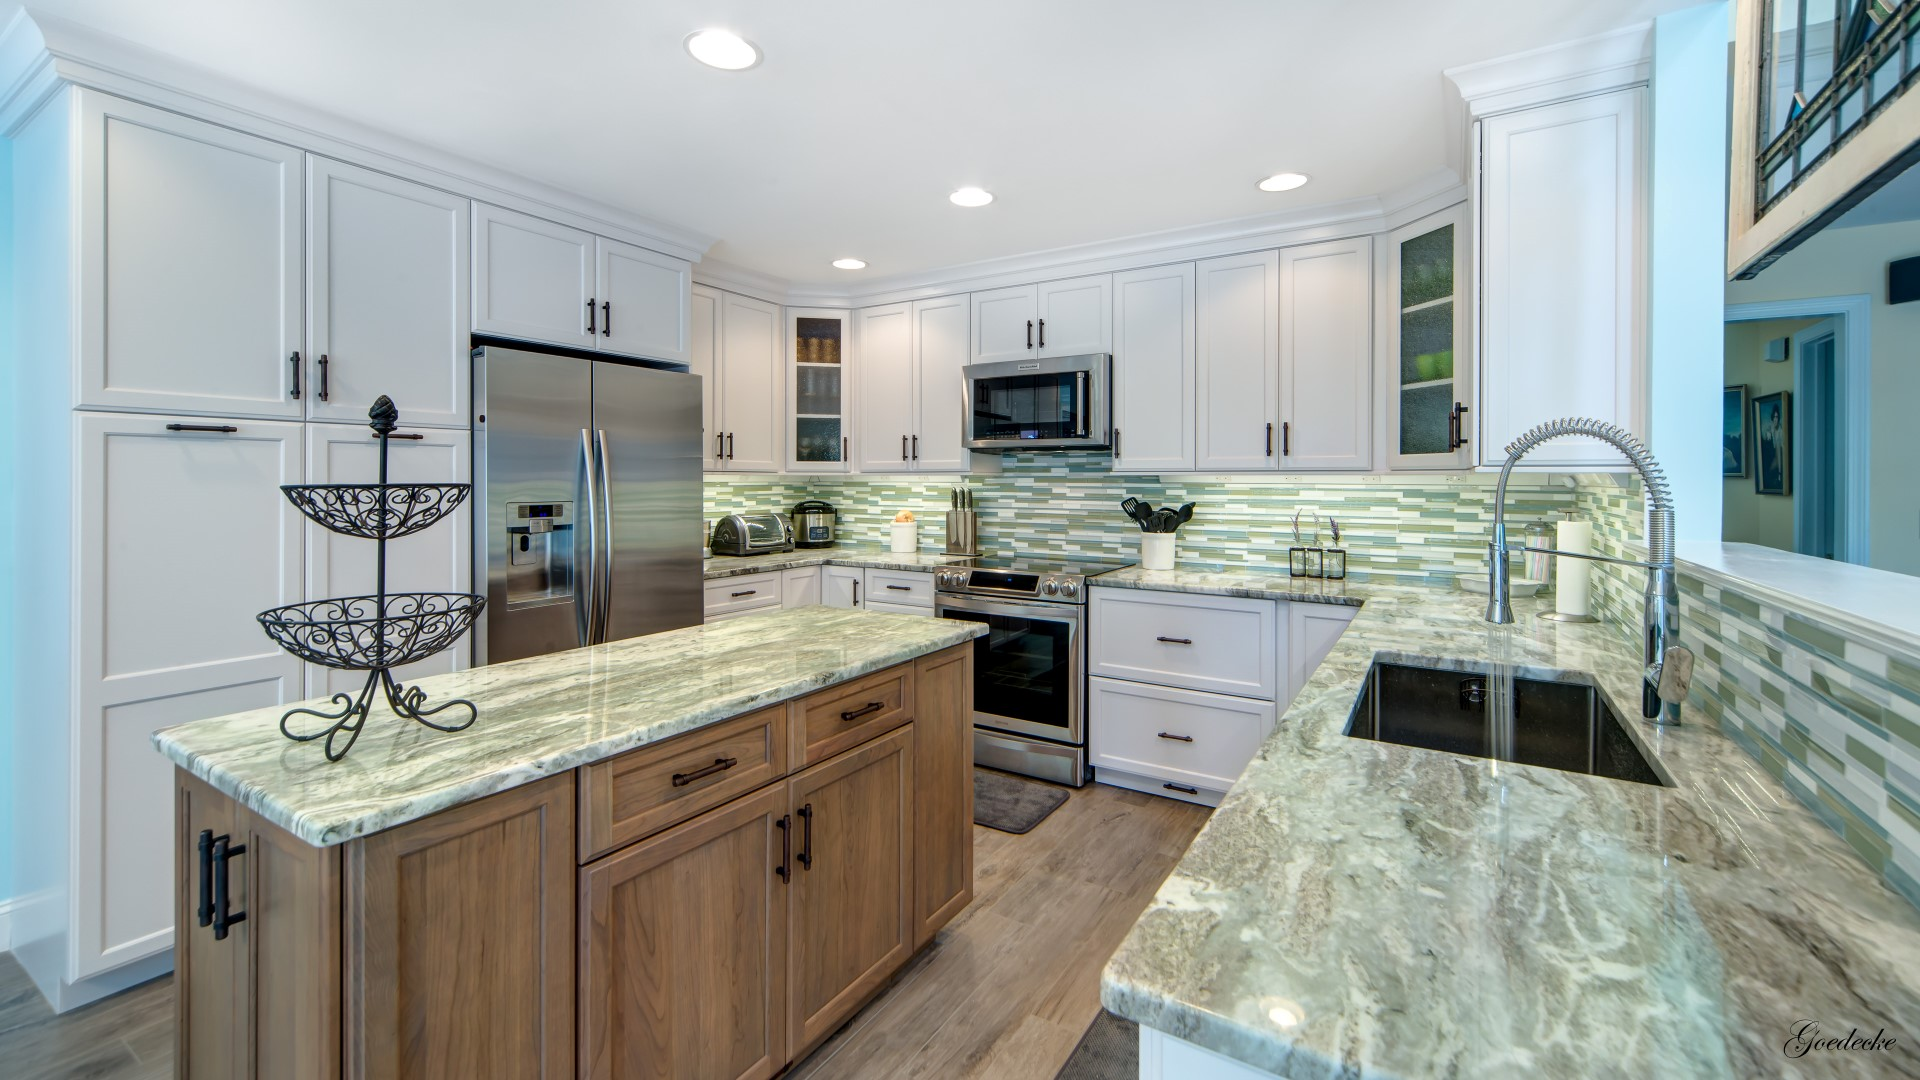 Looking For Kitchen Inspiration?